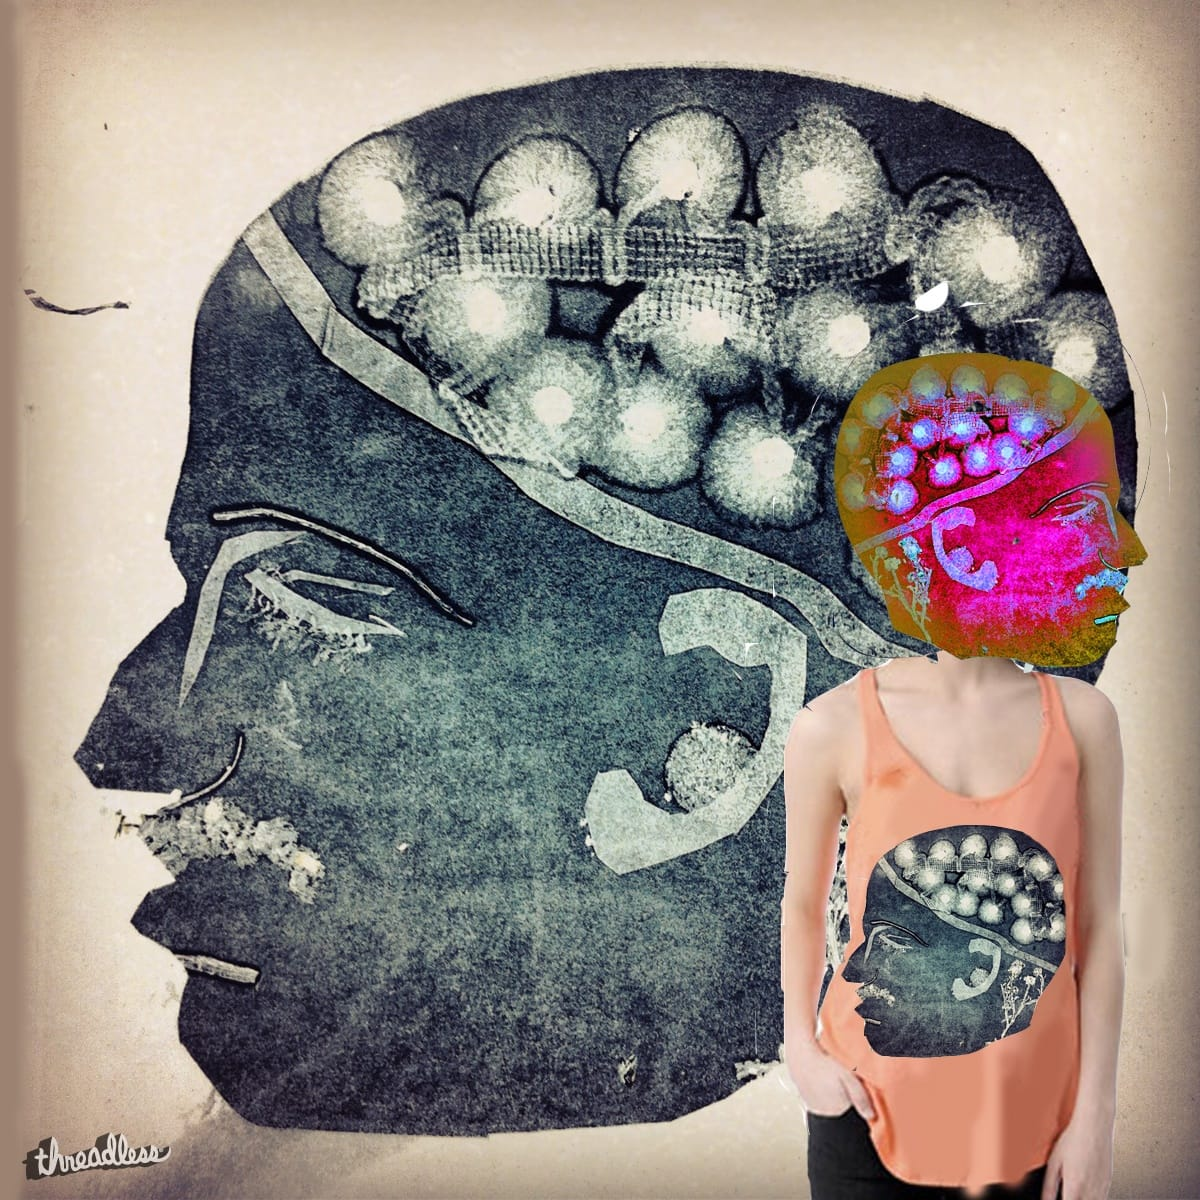 Brainy by ltrav on Threadless